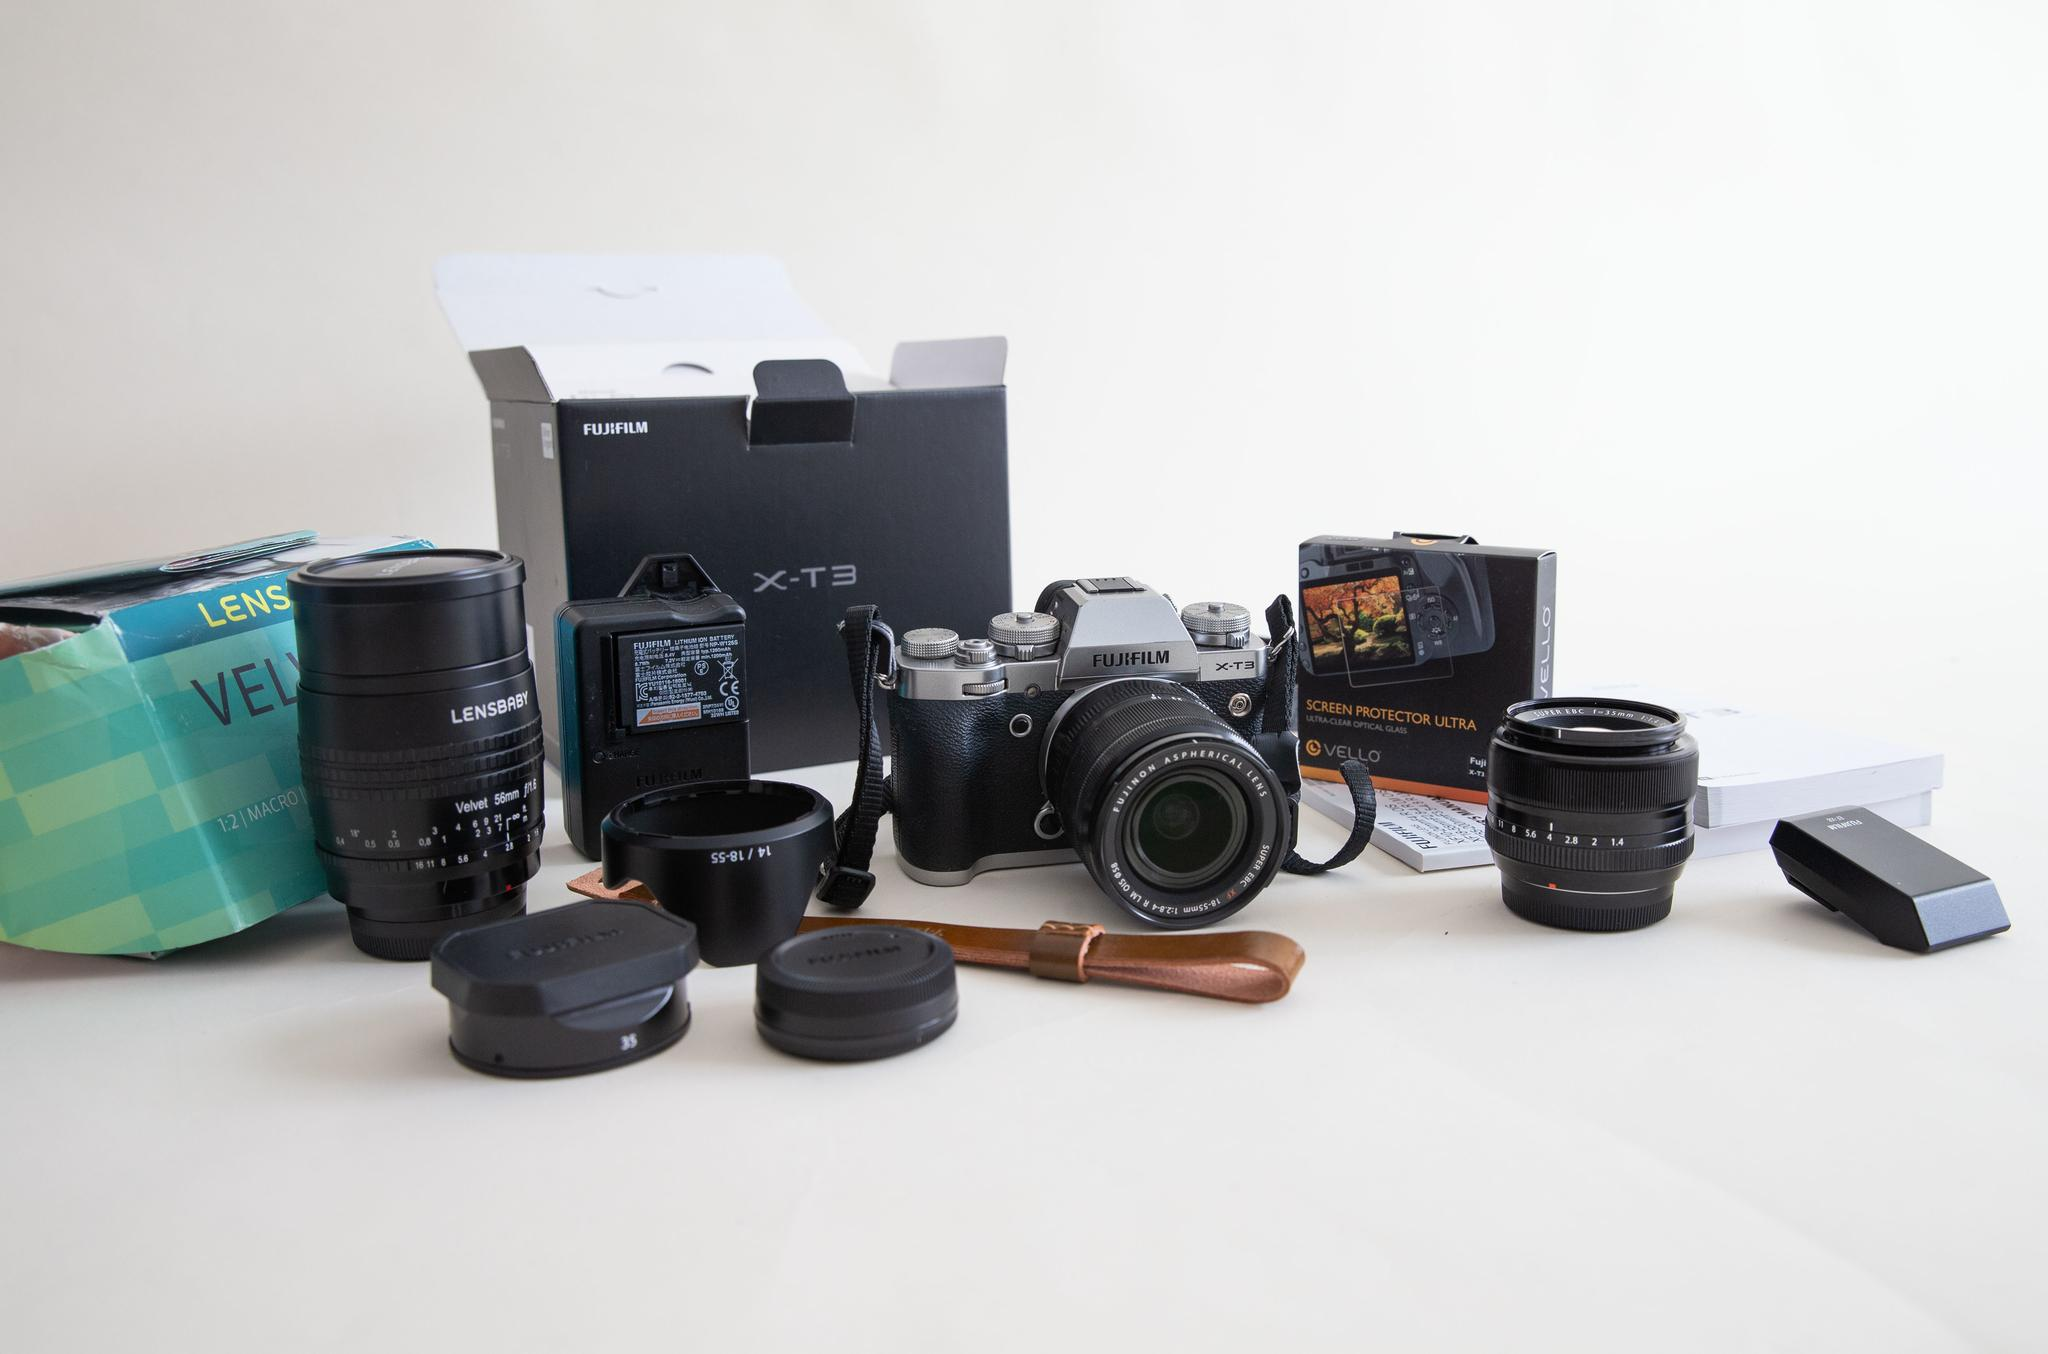 Brand new Fuji XT3 Camera and lenses for Sale | Qatar Living